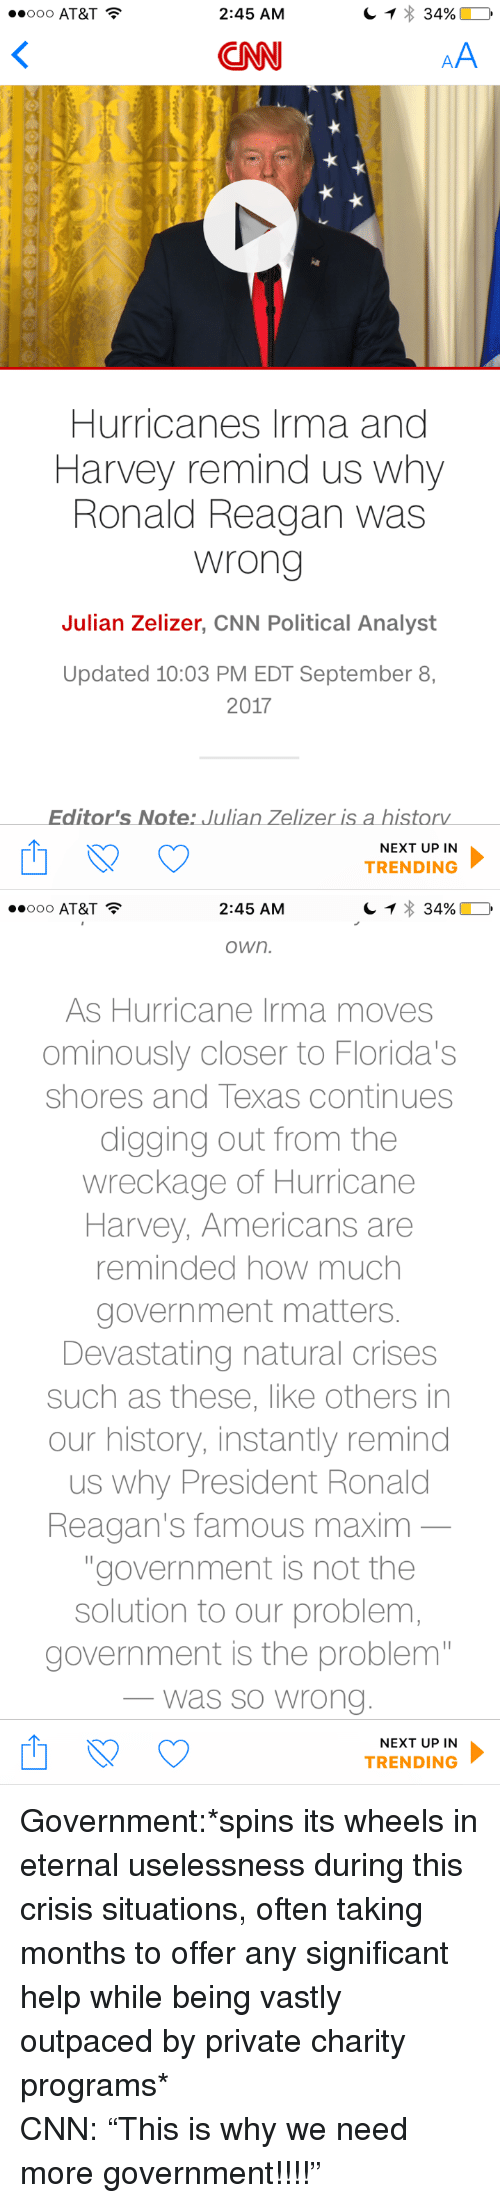 """cnn.com, At&t, and Help: OOO AT&T  2:45 AM  CNN  Hurricanes Irma and  Harvey remind us why  Ronald Reagan was  wrong  Julian Zelizer, CNN Political Analyst  Updated 10:03 PM EDT September 8,  2017  Editor's Note: Julian Zelizer is a historv  NEXT UP IN  TRENDING   2:45 AM  own.  As Hurricane Irma moves  ominously closer to Florida's  shores and Texas continues  digging out from the  wreckage of Hurricane  Harvey, Americans are  reminded how much  government matters  Devastating natural crises  such as these, like others in  our history, instantly remind  us why President Ronald  Reagan's famous maxim  """"government is not the  solution to our problem  government is the problem  was so Wrono  NEXT UP IN  TRENDING <p>Government:*spins its wheels in eternal uselessness during this crisis situations, often taking months to offer any significant help while being vastly outpaced by private charity programs*<br/> CNN: """"This is why we need more government!!!!""""</p>"""